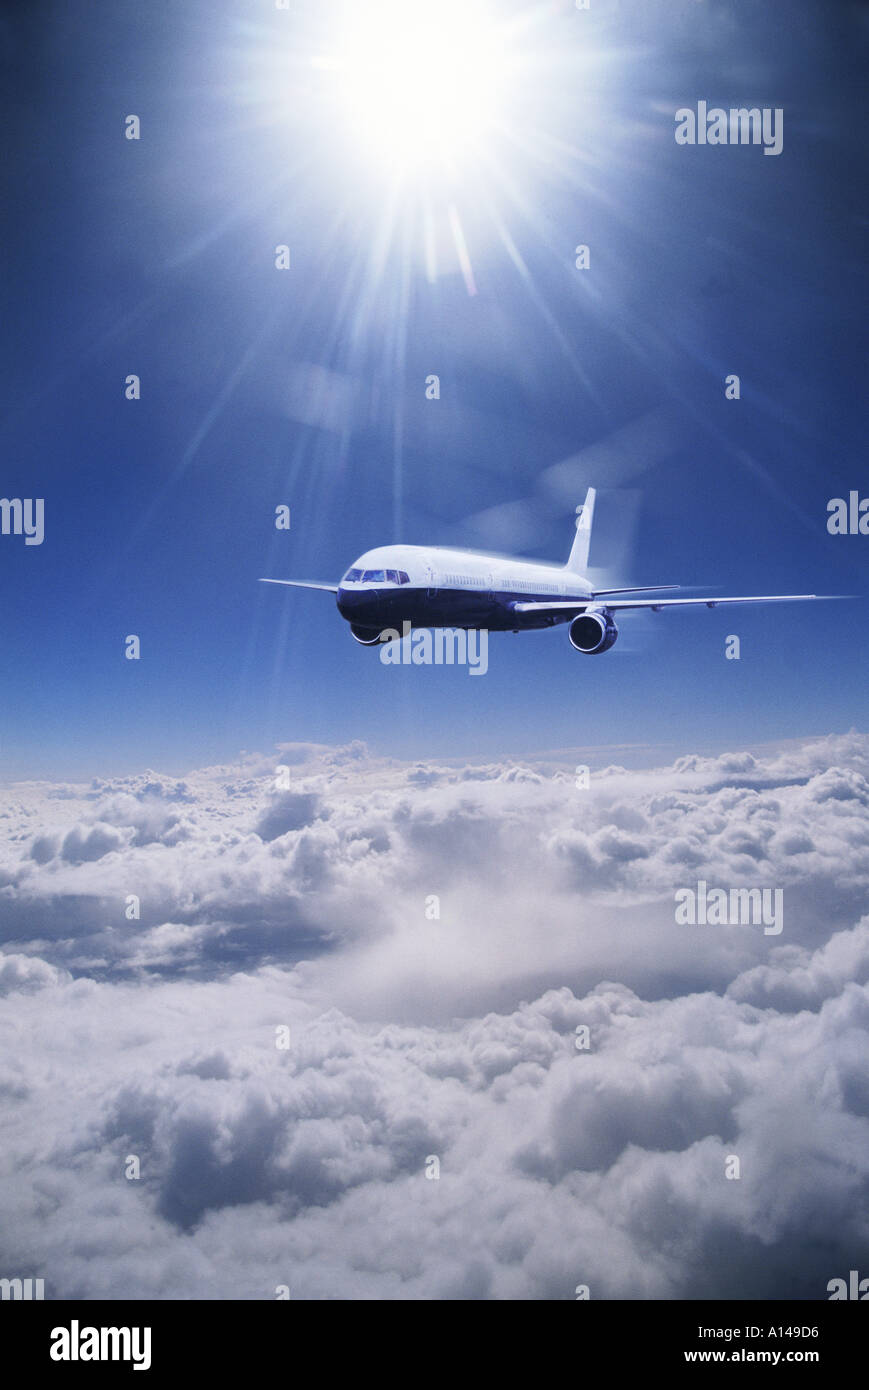 Aeroplane flying above the clouds - Stock Image